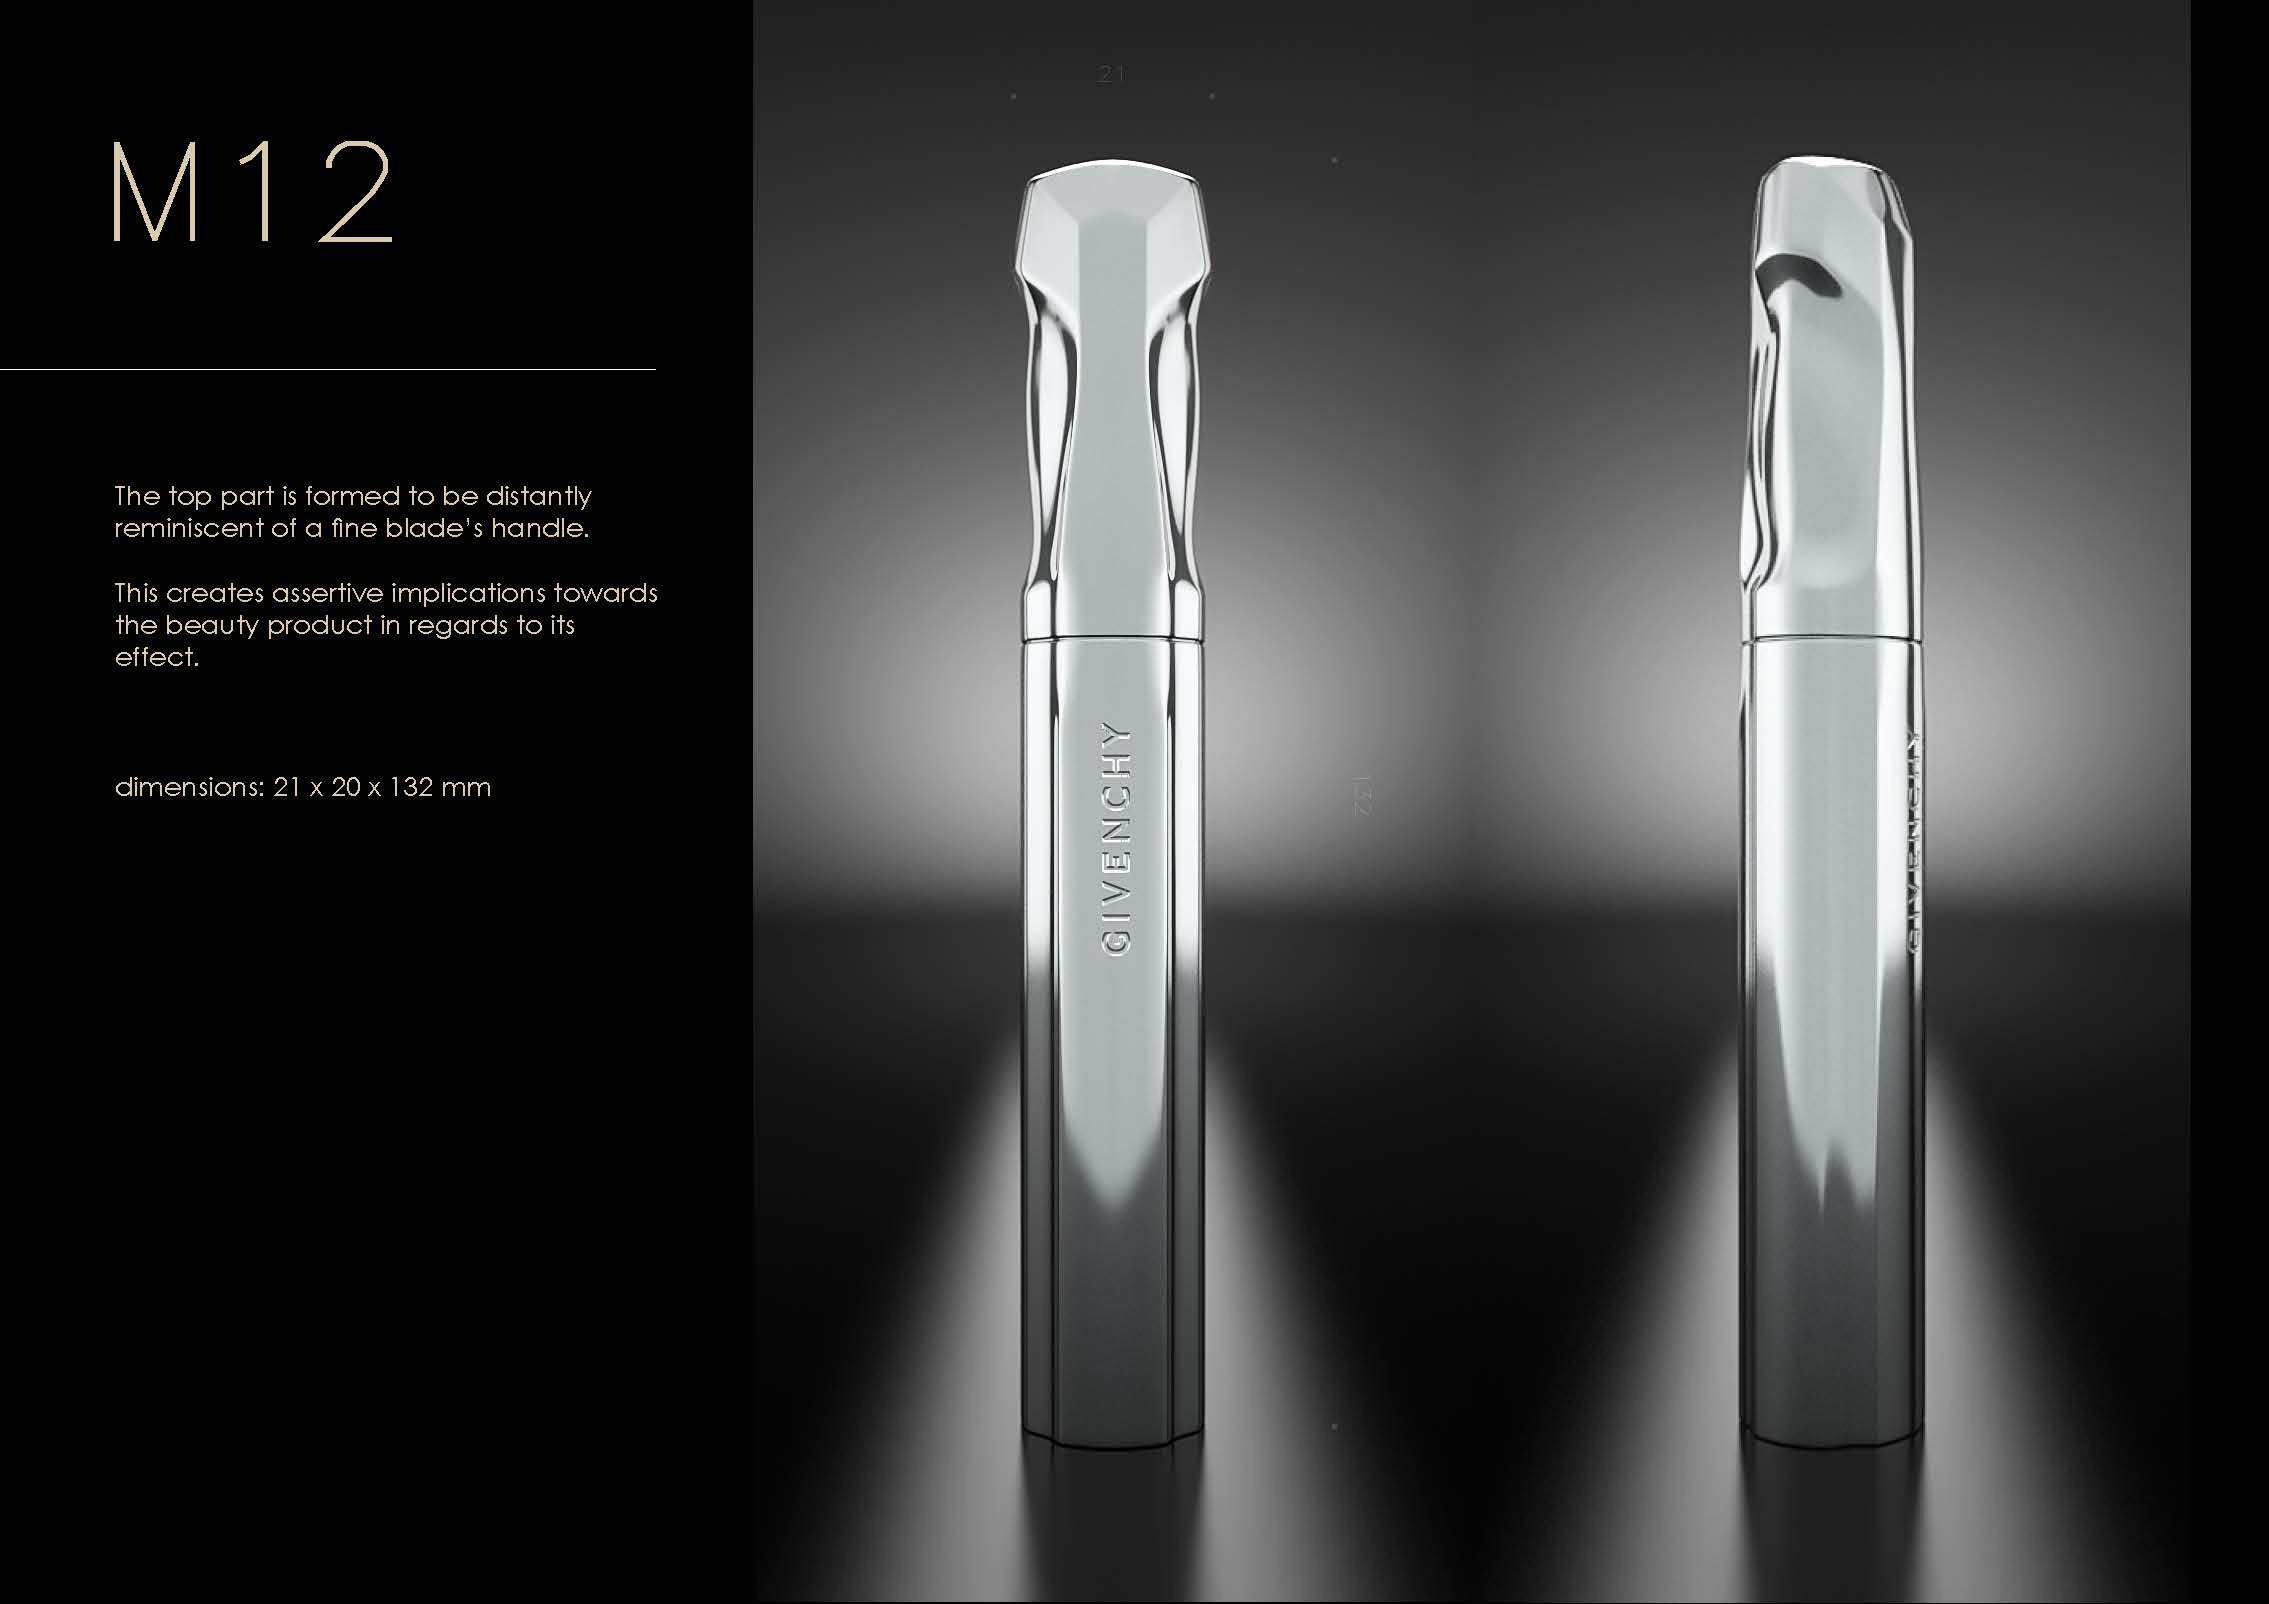 Givenchy mascaras w dimensions, I_Page_27.jpg